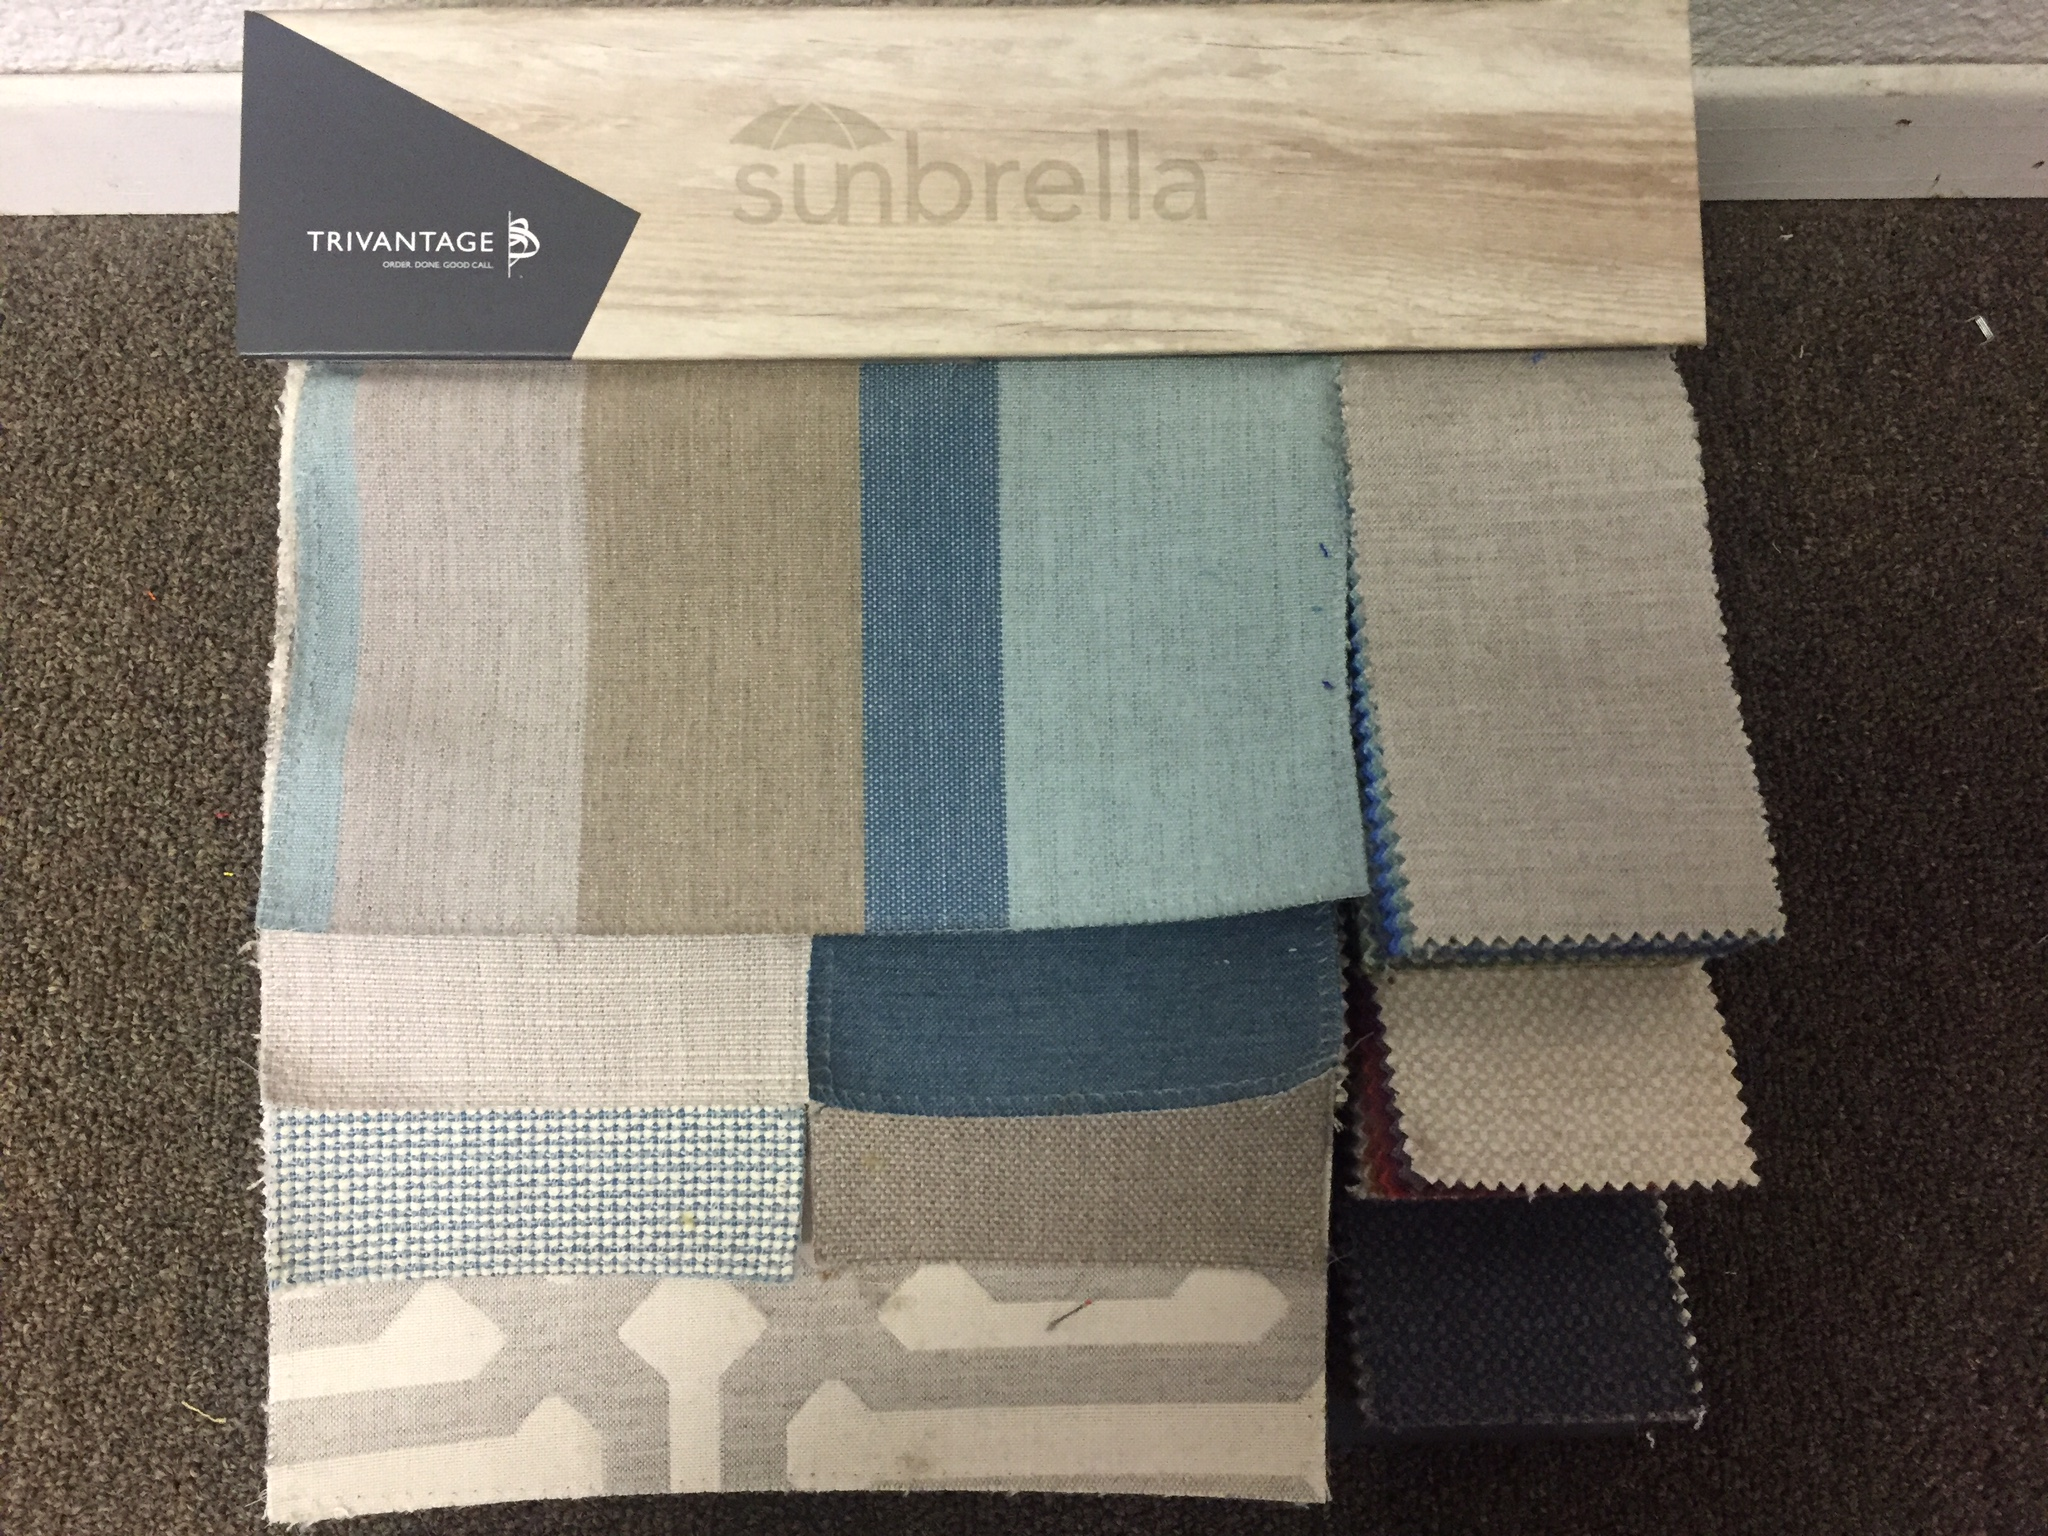 Sunbrella 2016 -2017 New Book Out